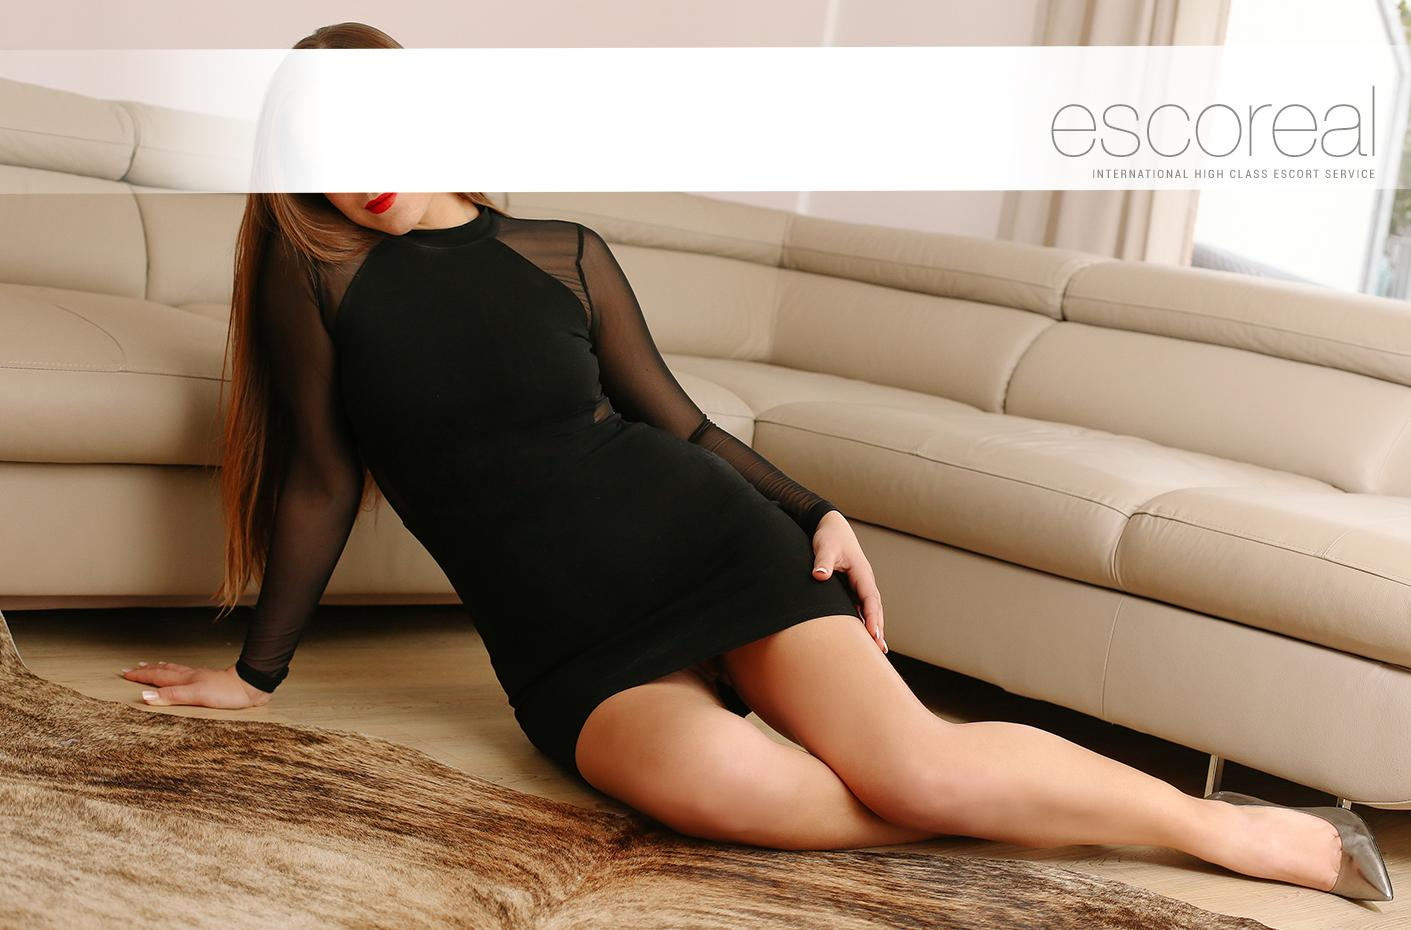 Alina from Escoreal High Class Escort